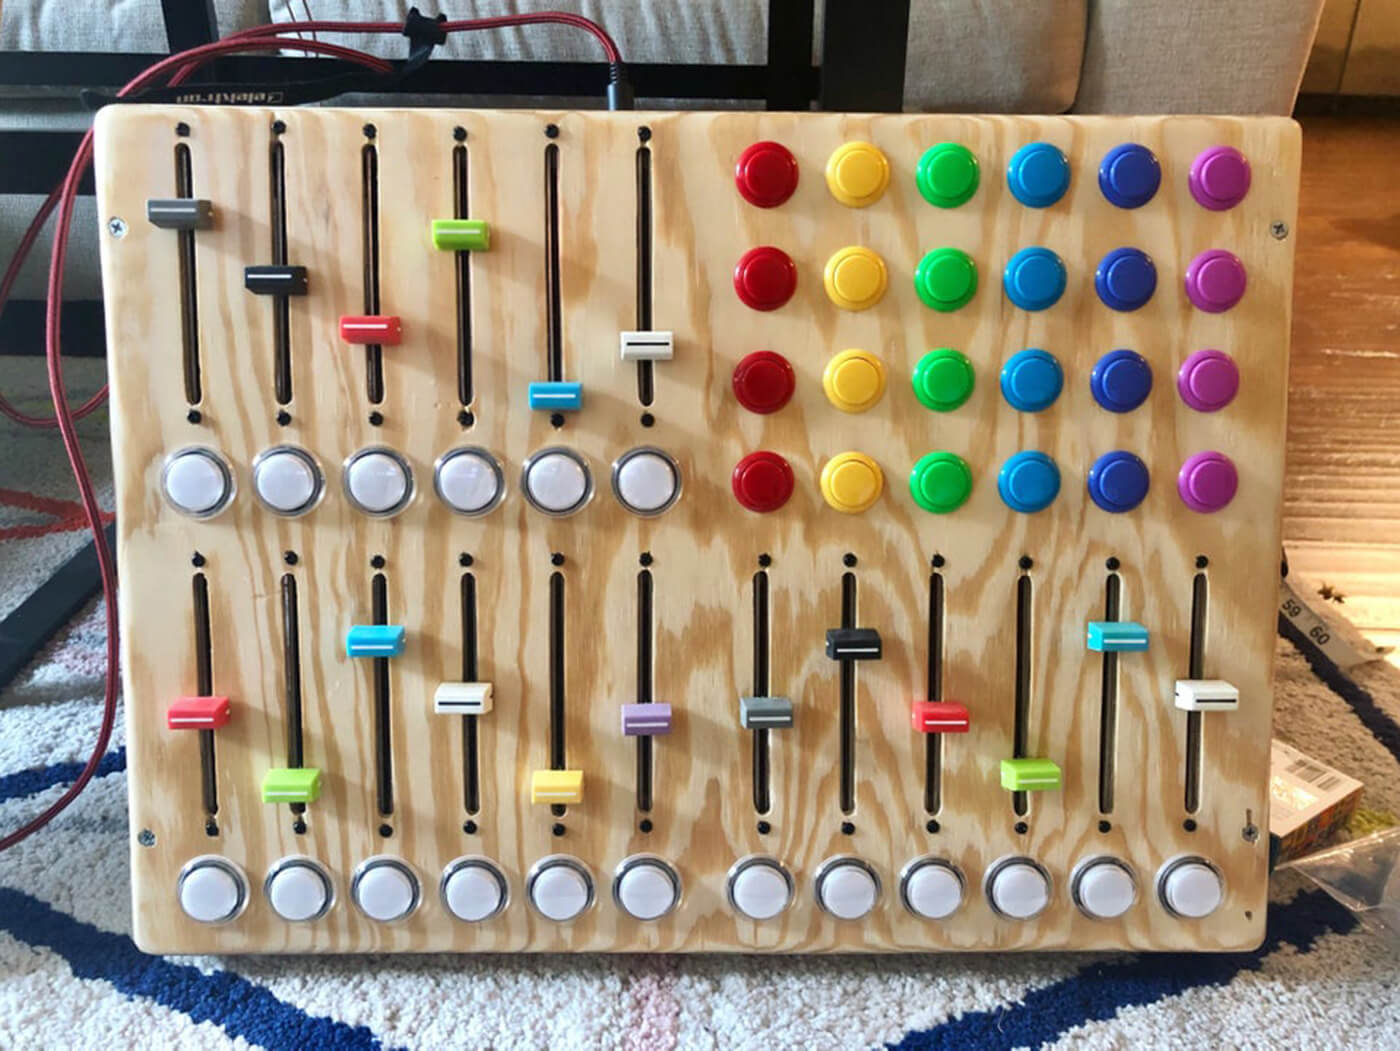 We want these rainbow-buttoned MIDI controllers